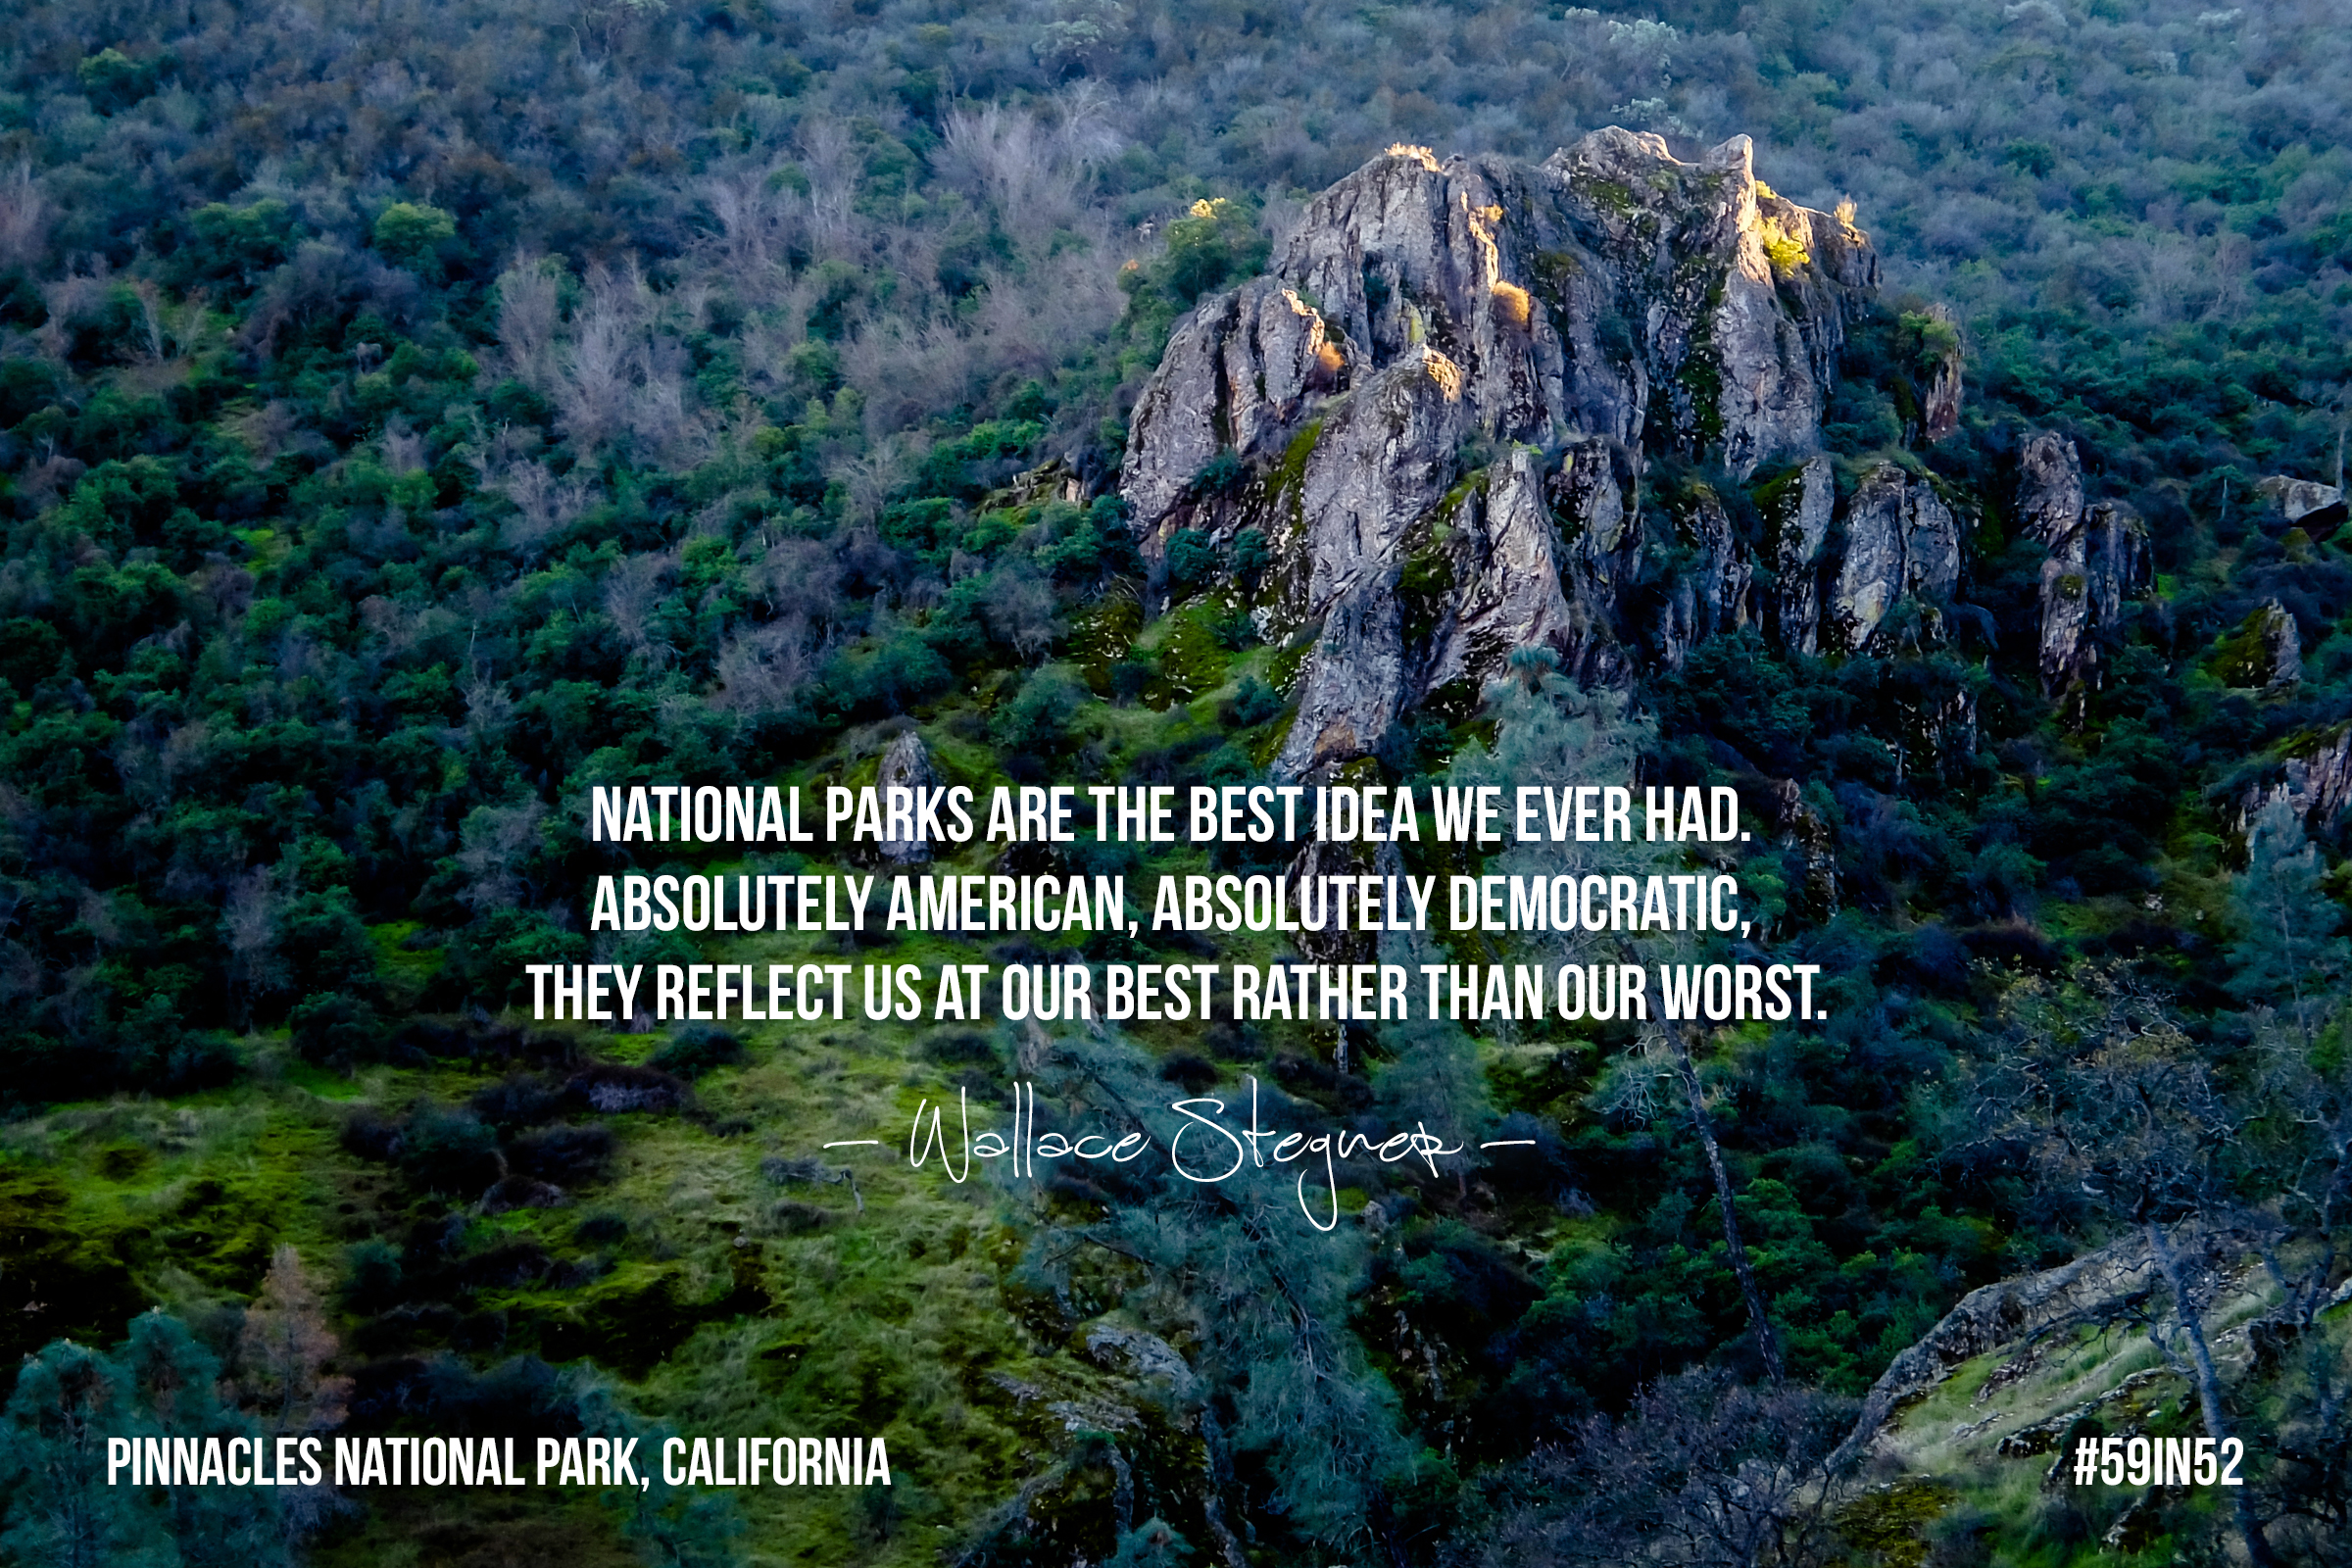 """""""National parks are the best idea we ever had. Absolutely American, absolutely democratic, they reflect us at our best rather than our worst."""" -Wallace Stegner"""